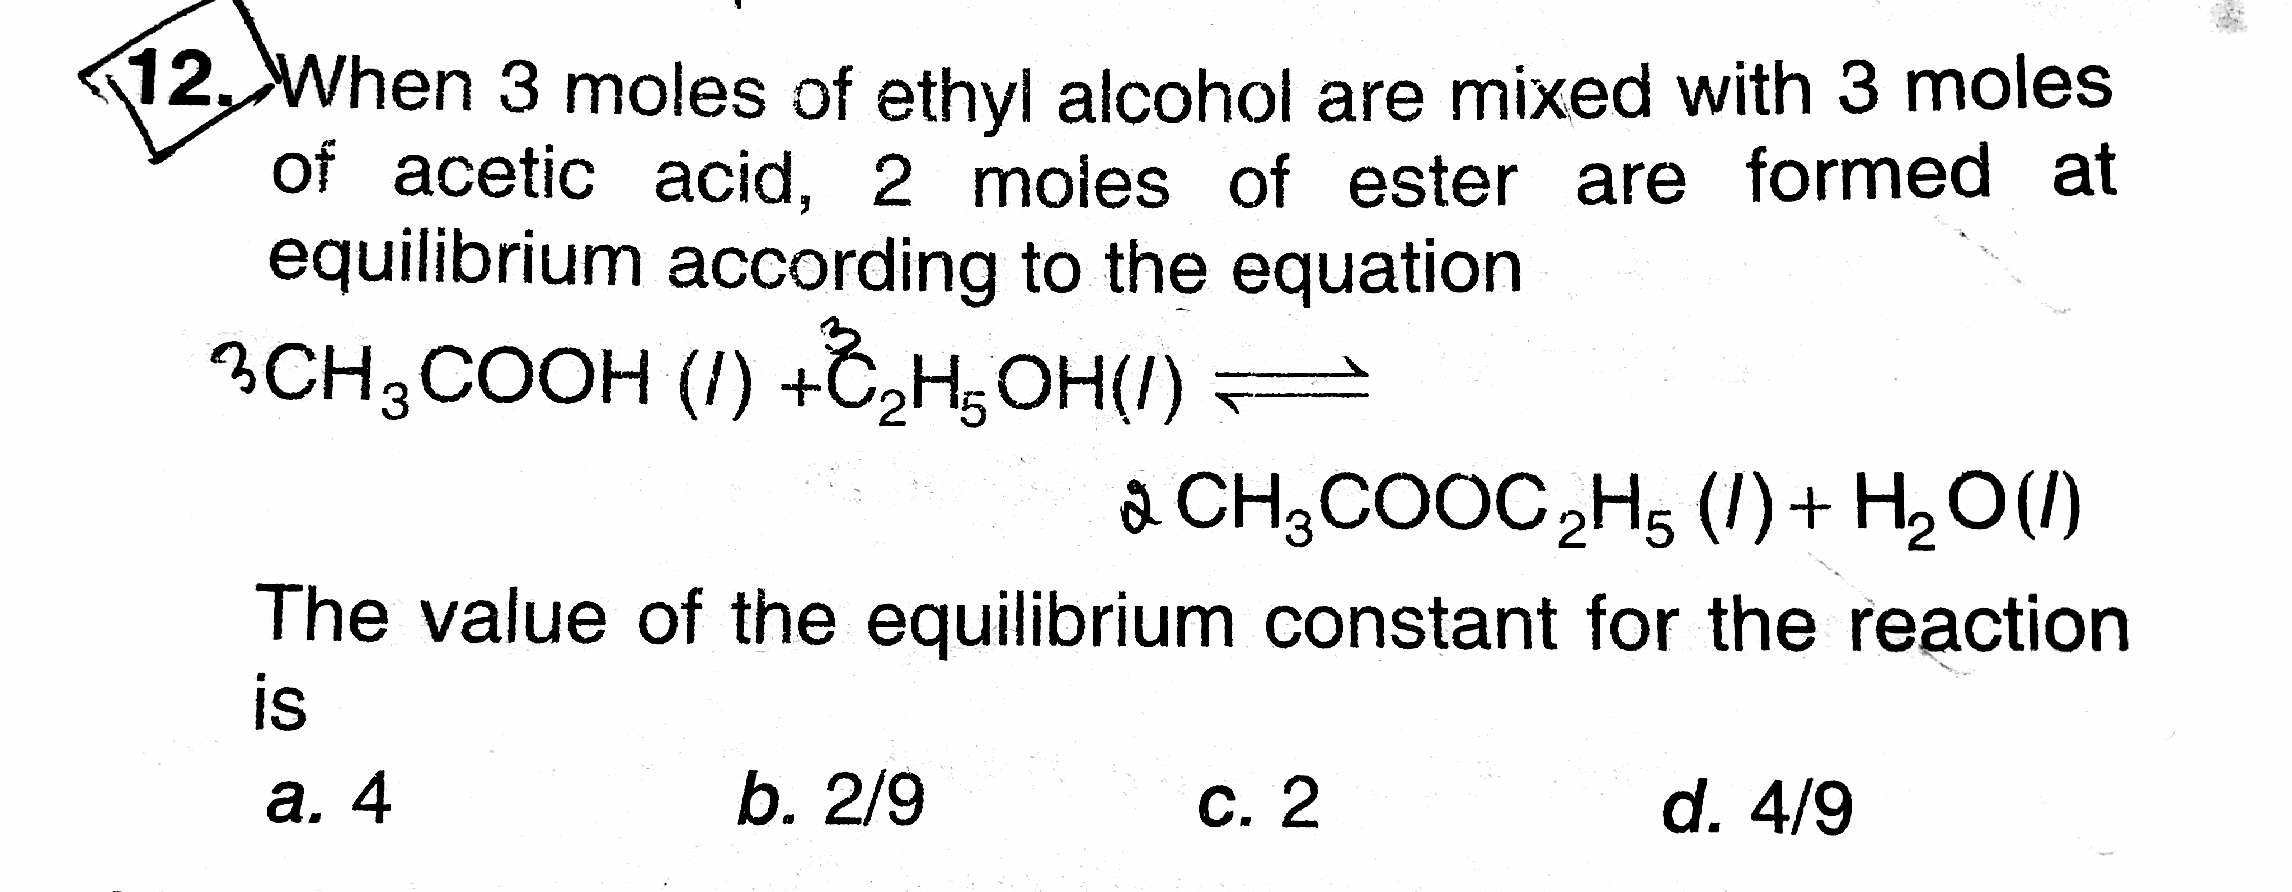 Why Is Water Taken In Calculating K Equilibrium Constant